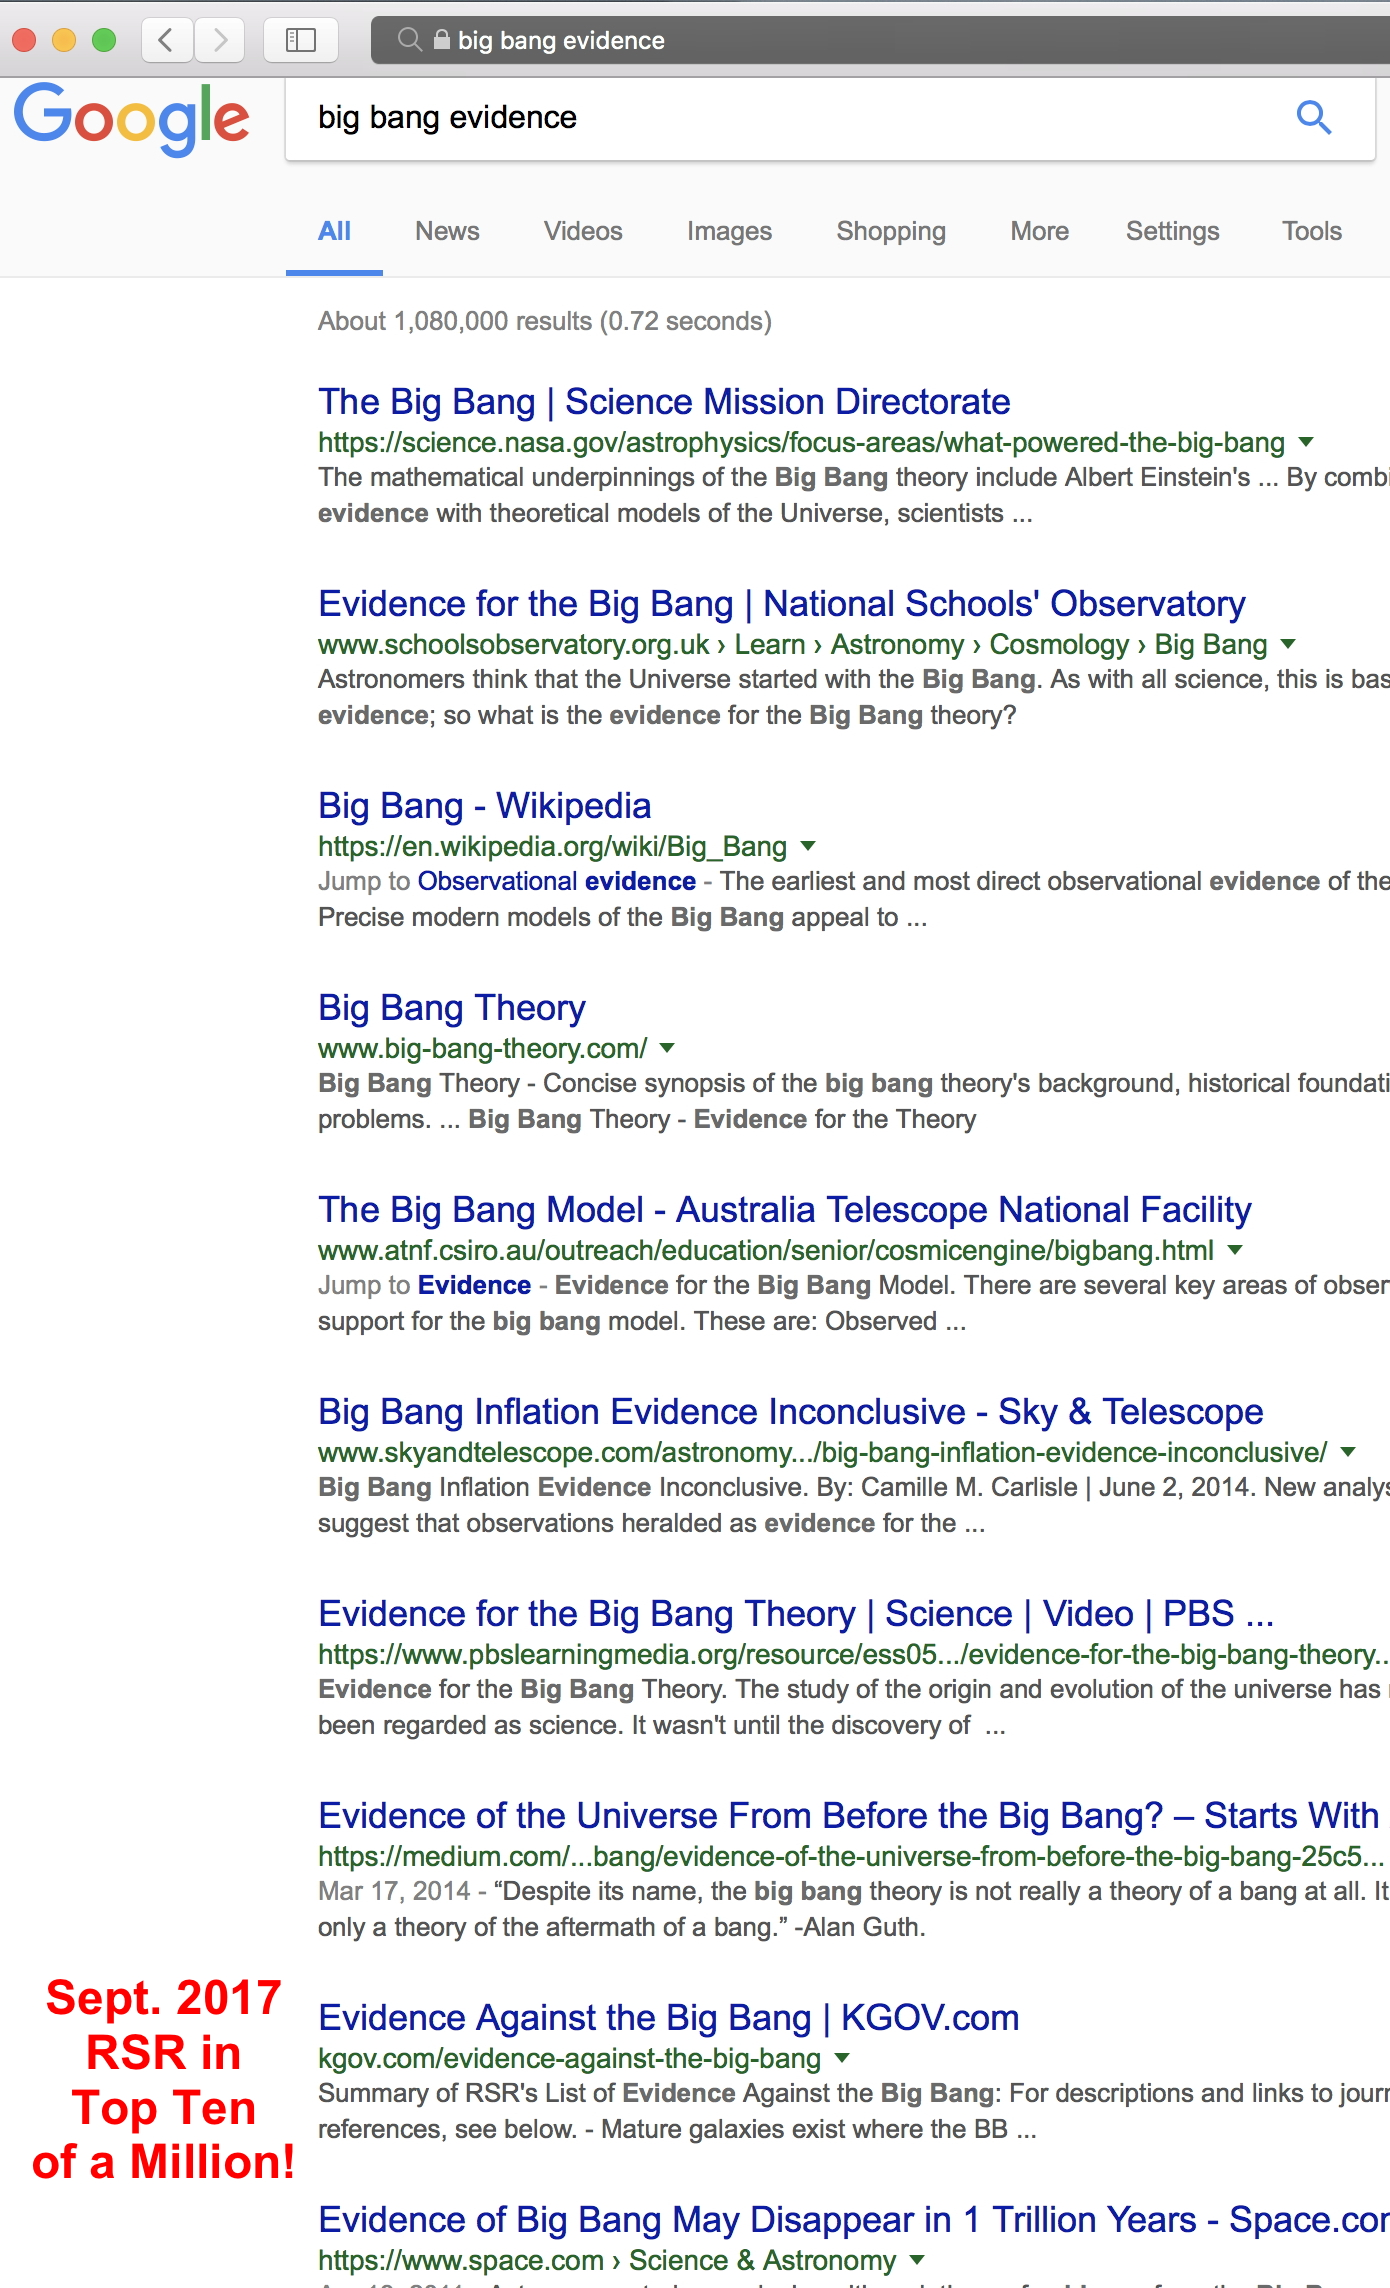 Screenshot Google big bang evidence search, RSR in top ten!